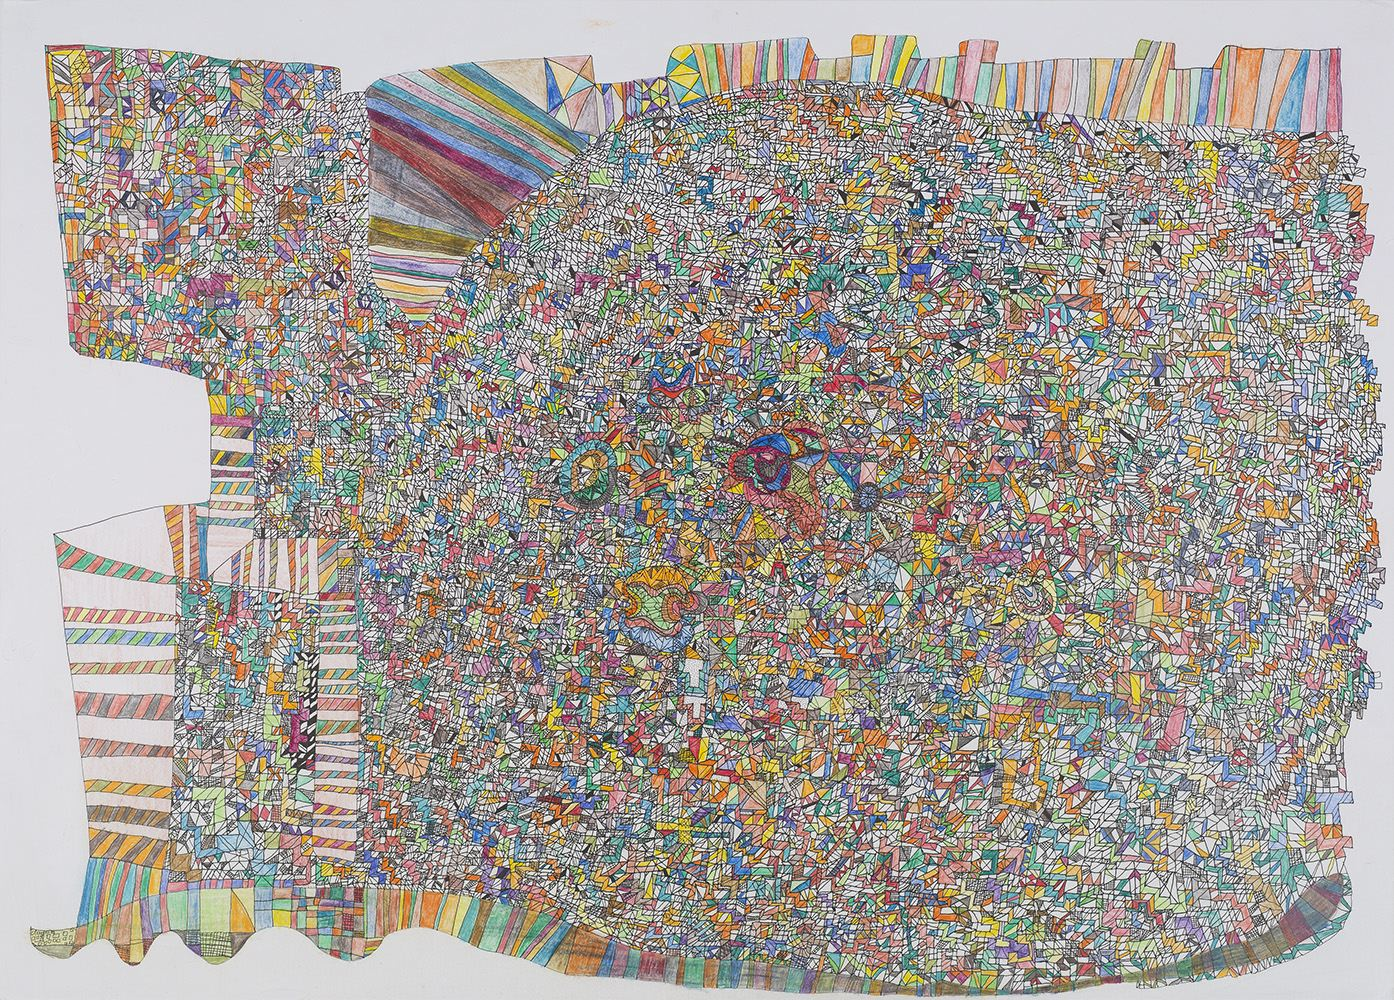 Paul Kai Schröder    Untitled  , 2014 Crayon and ink on paper 19.5 x 27.5 inches 49.5 x 69.9 cm PKS 1